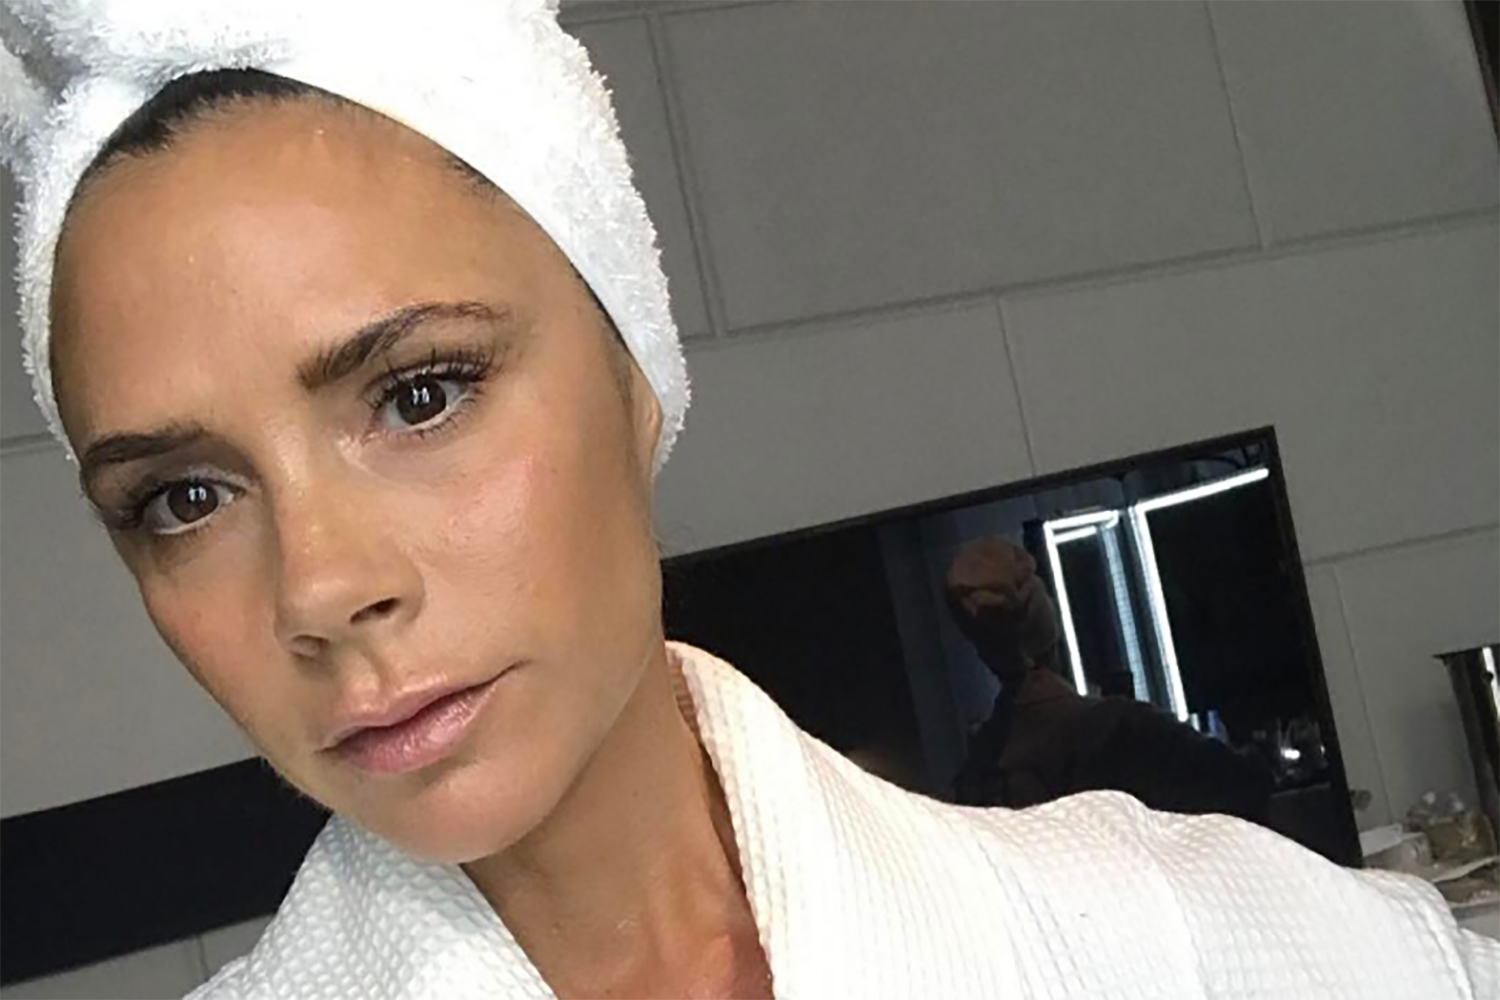 Victoria Beckham Swears By This Budget Natural Beauty Product